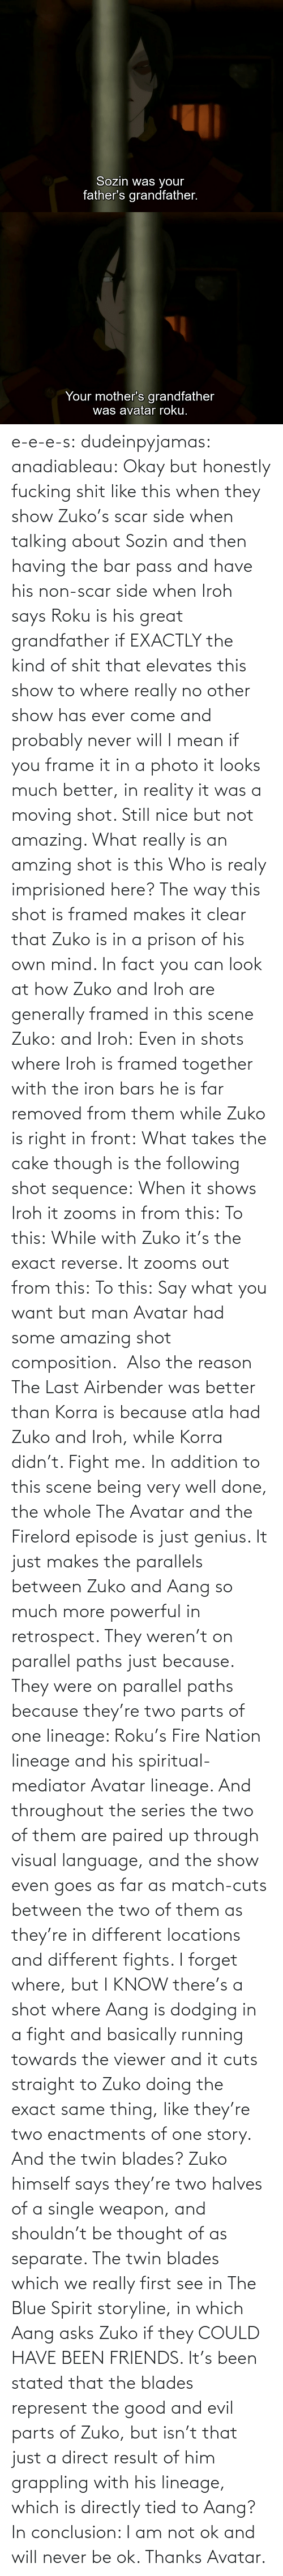 own: e-e-e-s: dudeinpyjamas:   anadiableau: Okay but honestly fucking shit like this when they show Zuko's scar side when talking about Sozin and then having the bar pass and have his non-scar side when Iroh says Roku is his great grandfather if EXACTLY the kind of shit that elevates this show to where really no other show has ever come and probably never will I mean if you frame it in a photo it looks much better, in reality it was a moving shot. Still nice but not amazing. What really is an amzing shot is this Who is realy imprisioned here? The way this shot is framed makes it clear that Zuko is in a prison of his own mind. In fact you can look at how Zuko and Iroh are generally framed in this scene Zuko: and Iroh: Even in shots where Iroh is framed together with the iron bars he is far removed from them while Zuko is right in front:  What takes the cake though is the following shot sequence: When it shows Iroh it zooms in from this: To this: While with Zuko it's the exact reverse. It zooms out from this: To this: Say what you want but man Avatar had some amazing shot composition.   Also the reason The Last Airbender was better than Korra is because atla had Zuko and Iroh, while Korra didn't. Fight me.    In addition to this scene being very well done, the whole The Avatar and the Firelord episode is just genius.  It just makes the parallels between Zuko and Aang so much more powerful in retrospect.  They weren't on parallel paths just because.  They were on parallel paths because they're two parts of one lineage: Roku's Fire Nation lineage and his spiritual-mediator Avatar lineage.  And throughout the series the two of them are paired up through visual language, and the show even goes as far as match-cuts between the two of them as they're in different locations and different fights.  I forget where, but I KNOW there's a shot where Aang is dodging in a fight and basically running towards the viewer and it cuts straight to Zuko doing the exact same thing, like they're two enactments of one story.   And the twin blades?  Zuko himself says they're two halves of a single weapon, and shouldn't be thought of as separate.  The twin blades which we really first see in The Blue Spirit storyline, in which Aang asks Zuko if they COULD HAVE BEEN FRIENDS.  It's been stated that the blades represent the good and evil parts of Zuko, but isn't that just a direct result of him grappling with his lineage, which is directly tied to Aang? In conclusion: I am not ok and will never be ok.  Thanks Avatar.